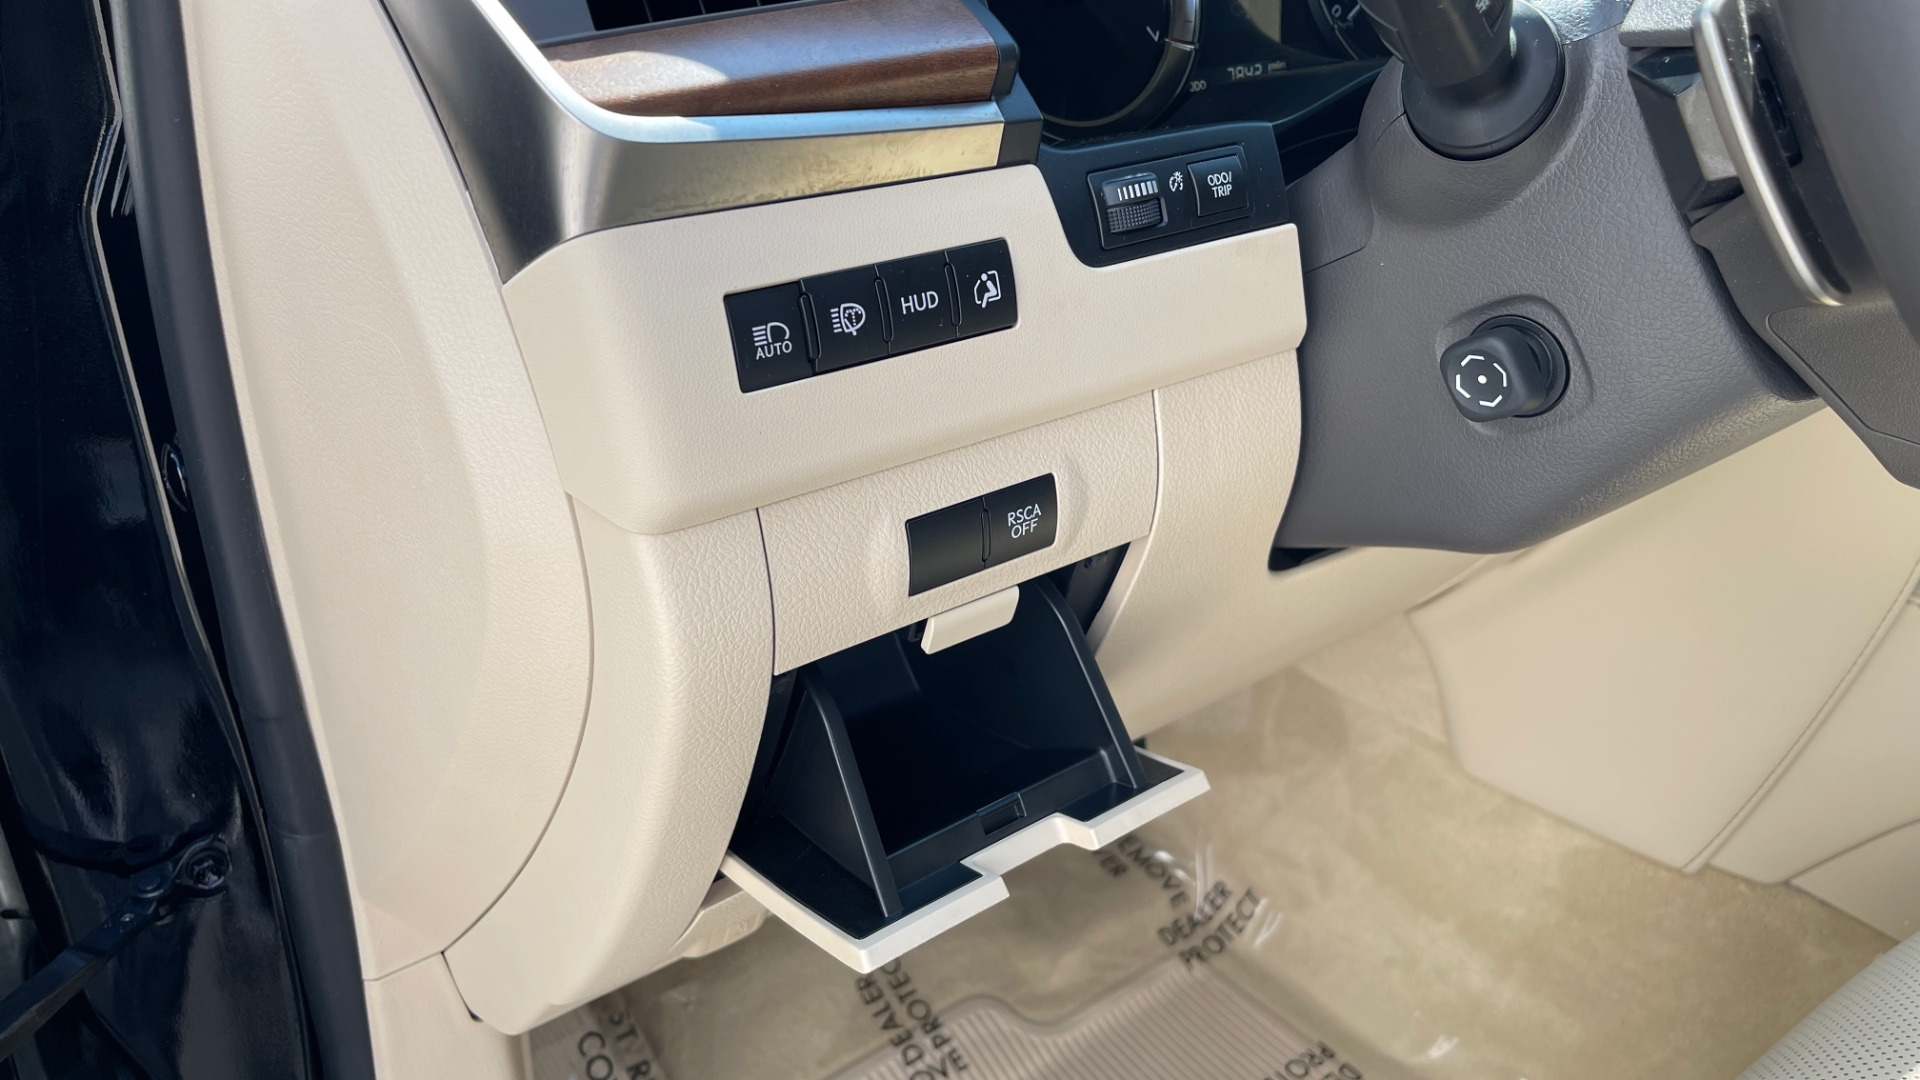 Used 2017 Lexus LX 570 LUXURY / 5.7L V8 / NAV / SUNROOF / 3-ROW / DVD / REARVIEW for sale $63,995 at Formula Imports in Charlotte NC 28227 29